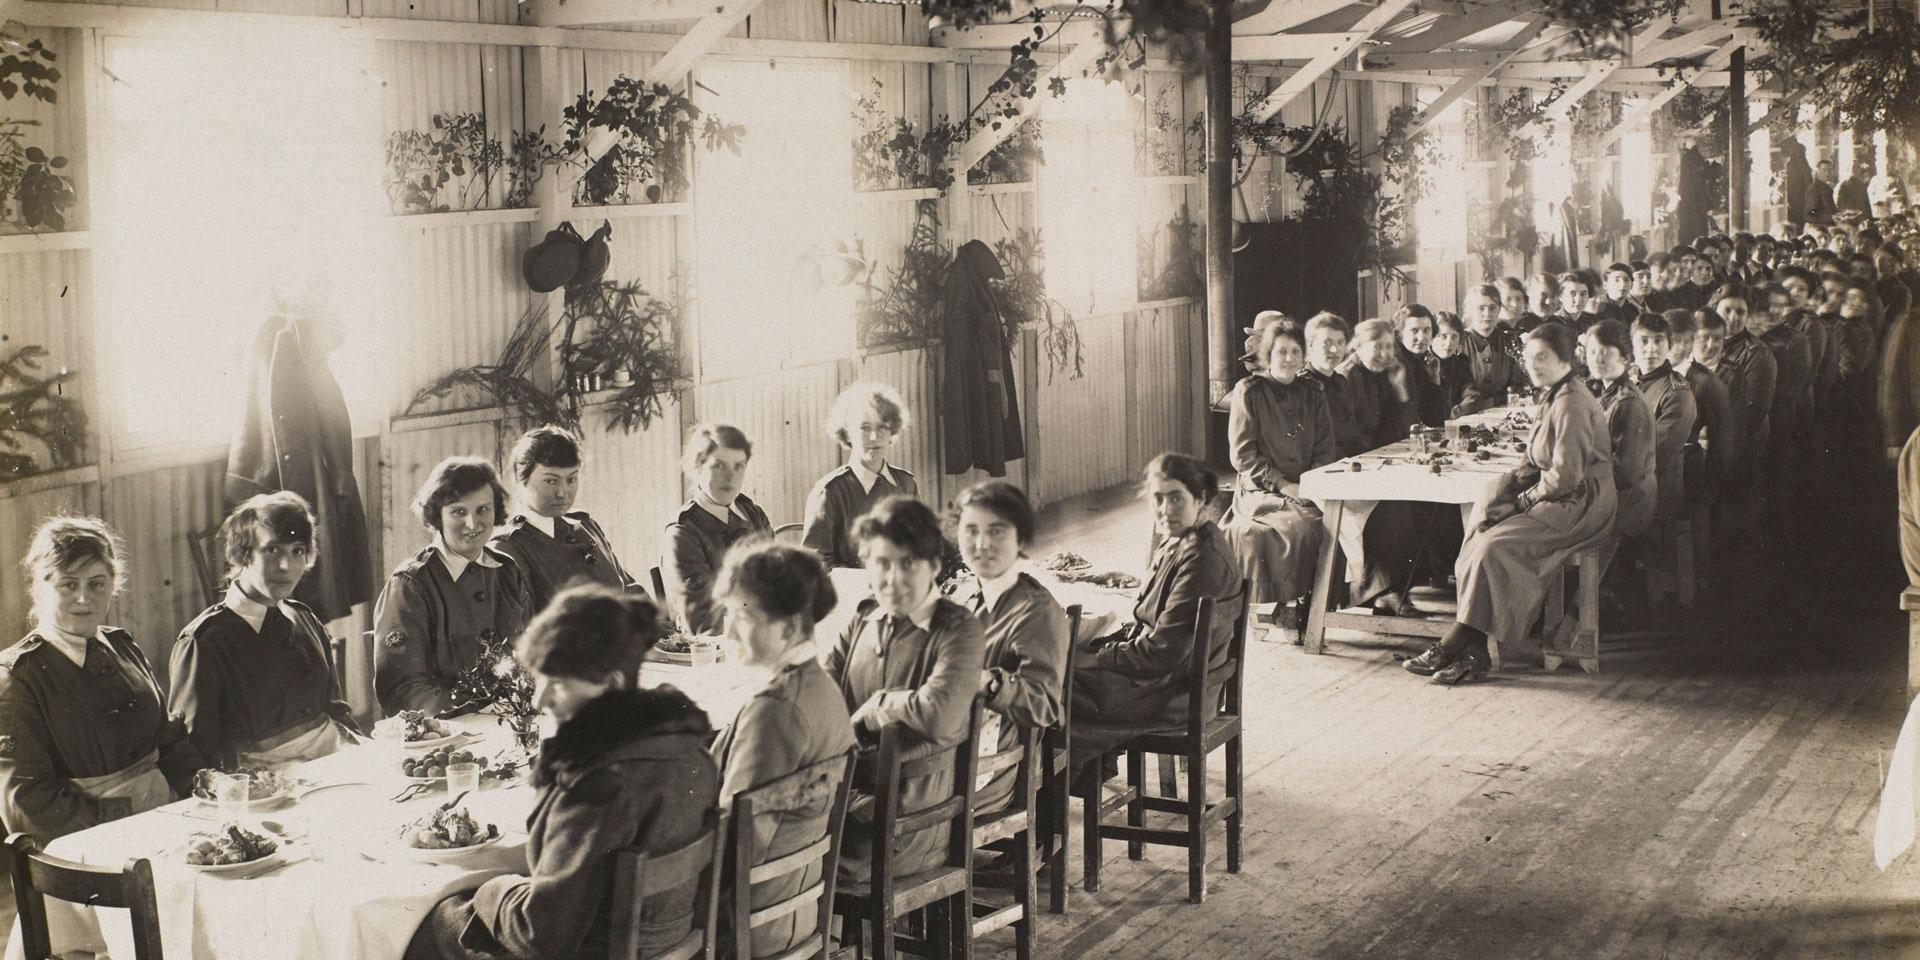 Members of the Women's Army Auxiliary Corps enjoy their Christmas Dinner, 1917